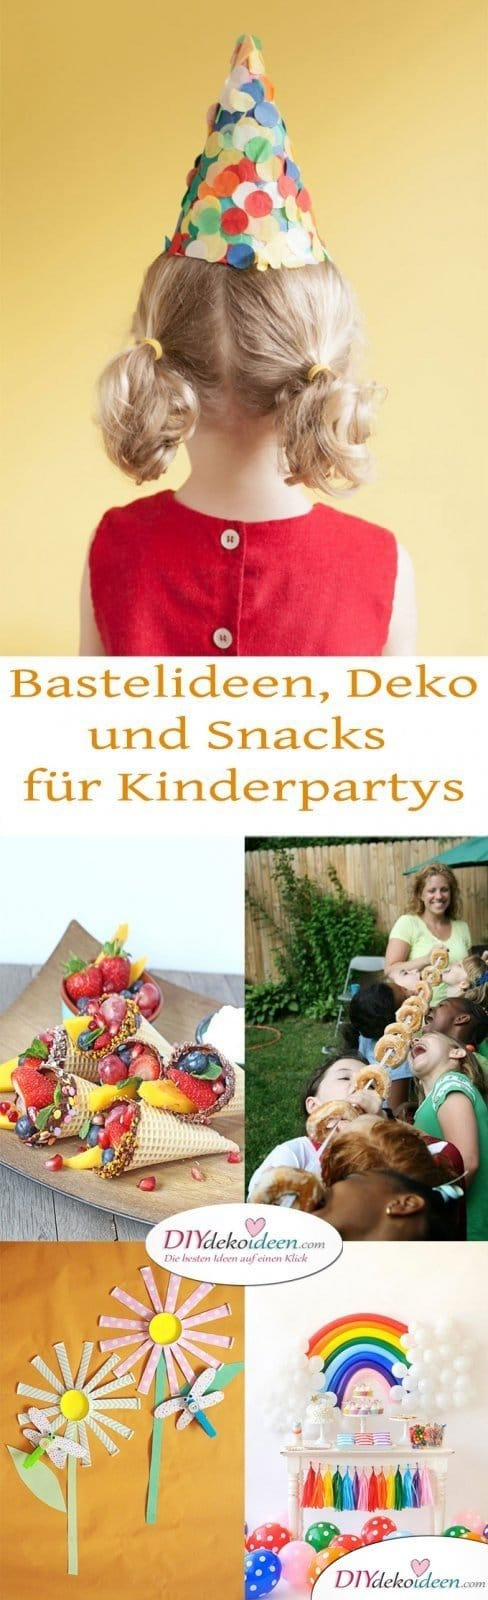 DIY Bastelideen - Kinderparty